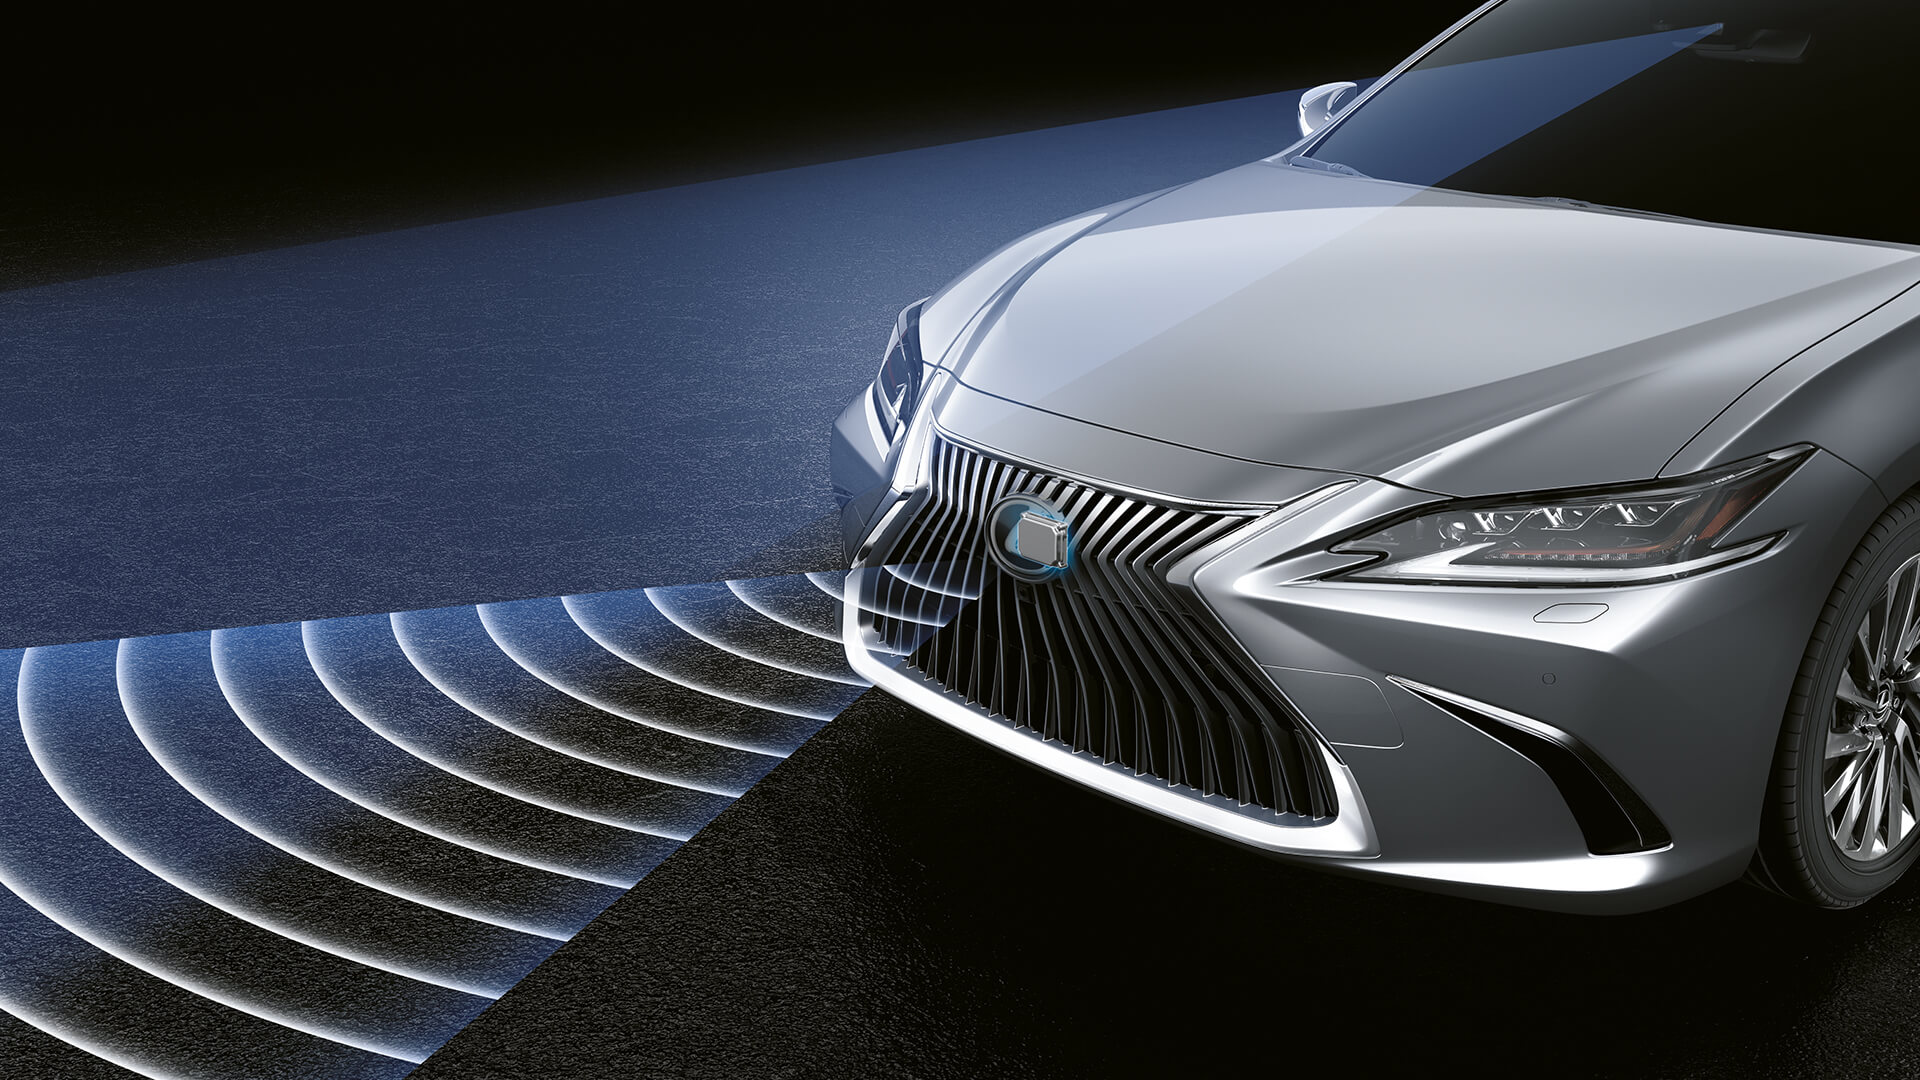 2021 lexus es hybrid experience feature safety system